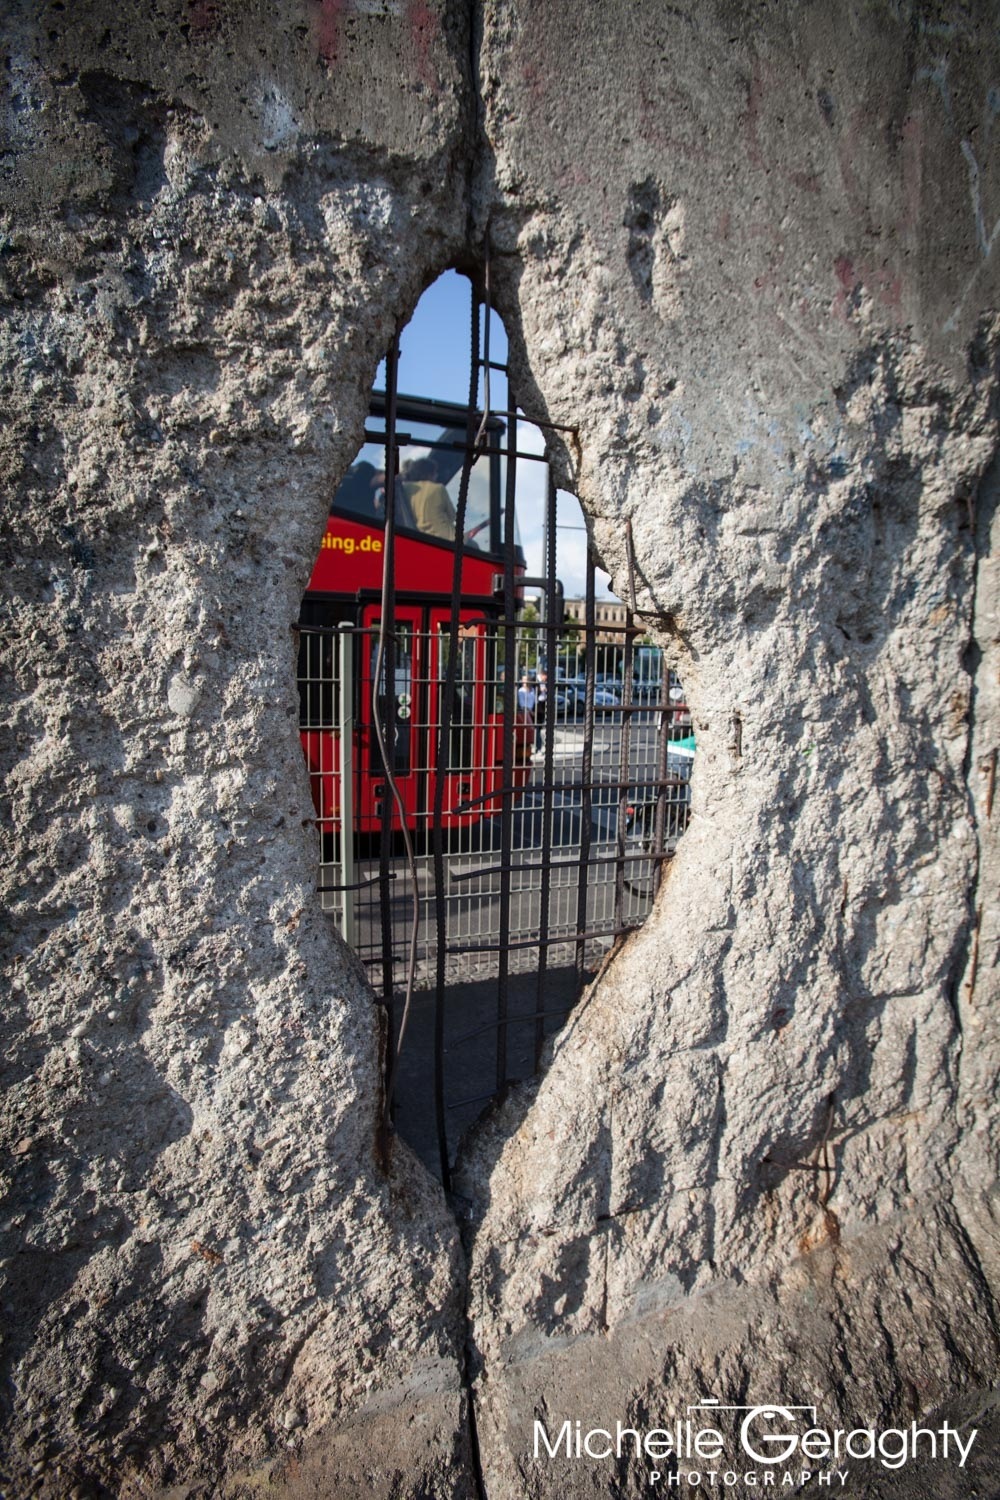 View through the Berlin Wall, Berlin, Germany